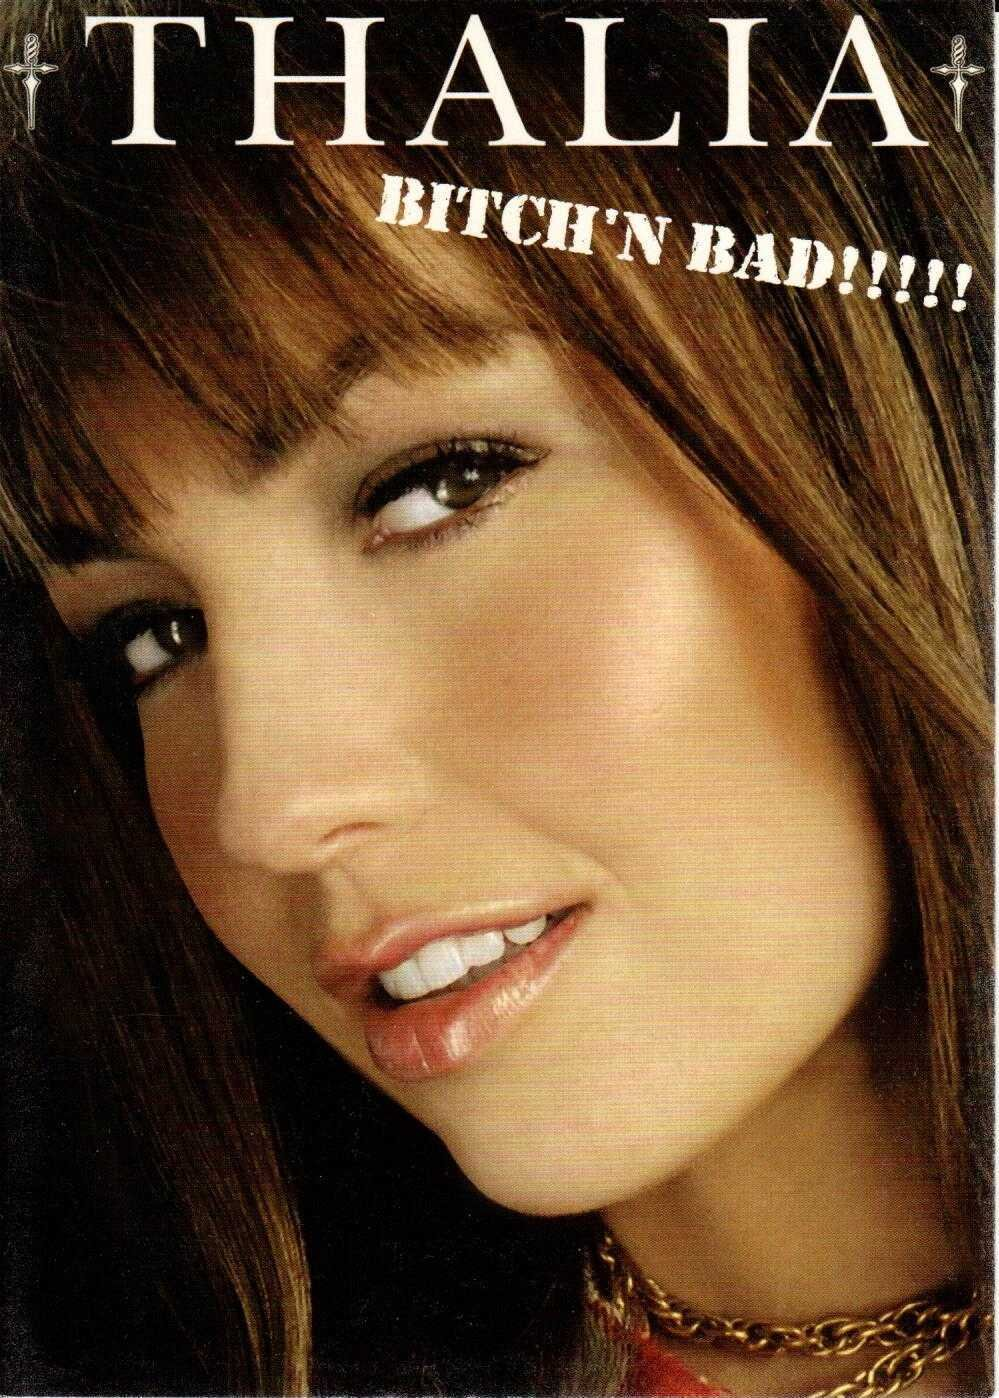 """THALIA Bitch'n Bad 2000 US 5"""" X 7"""" Official Two Sided Postcard"""